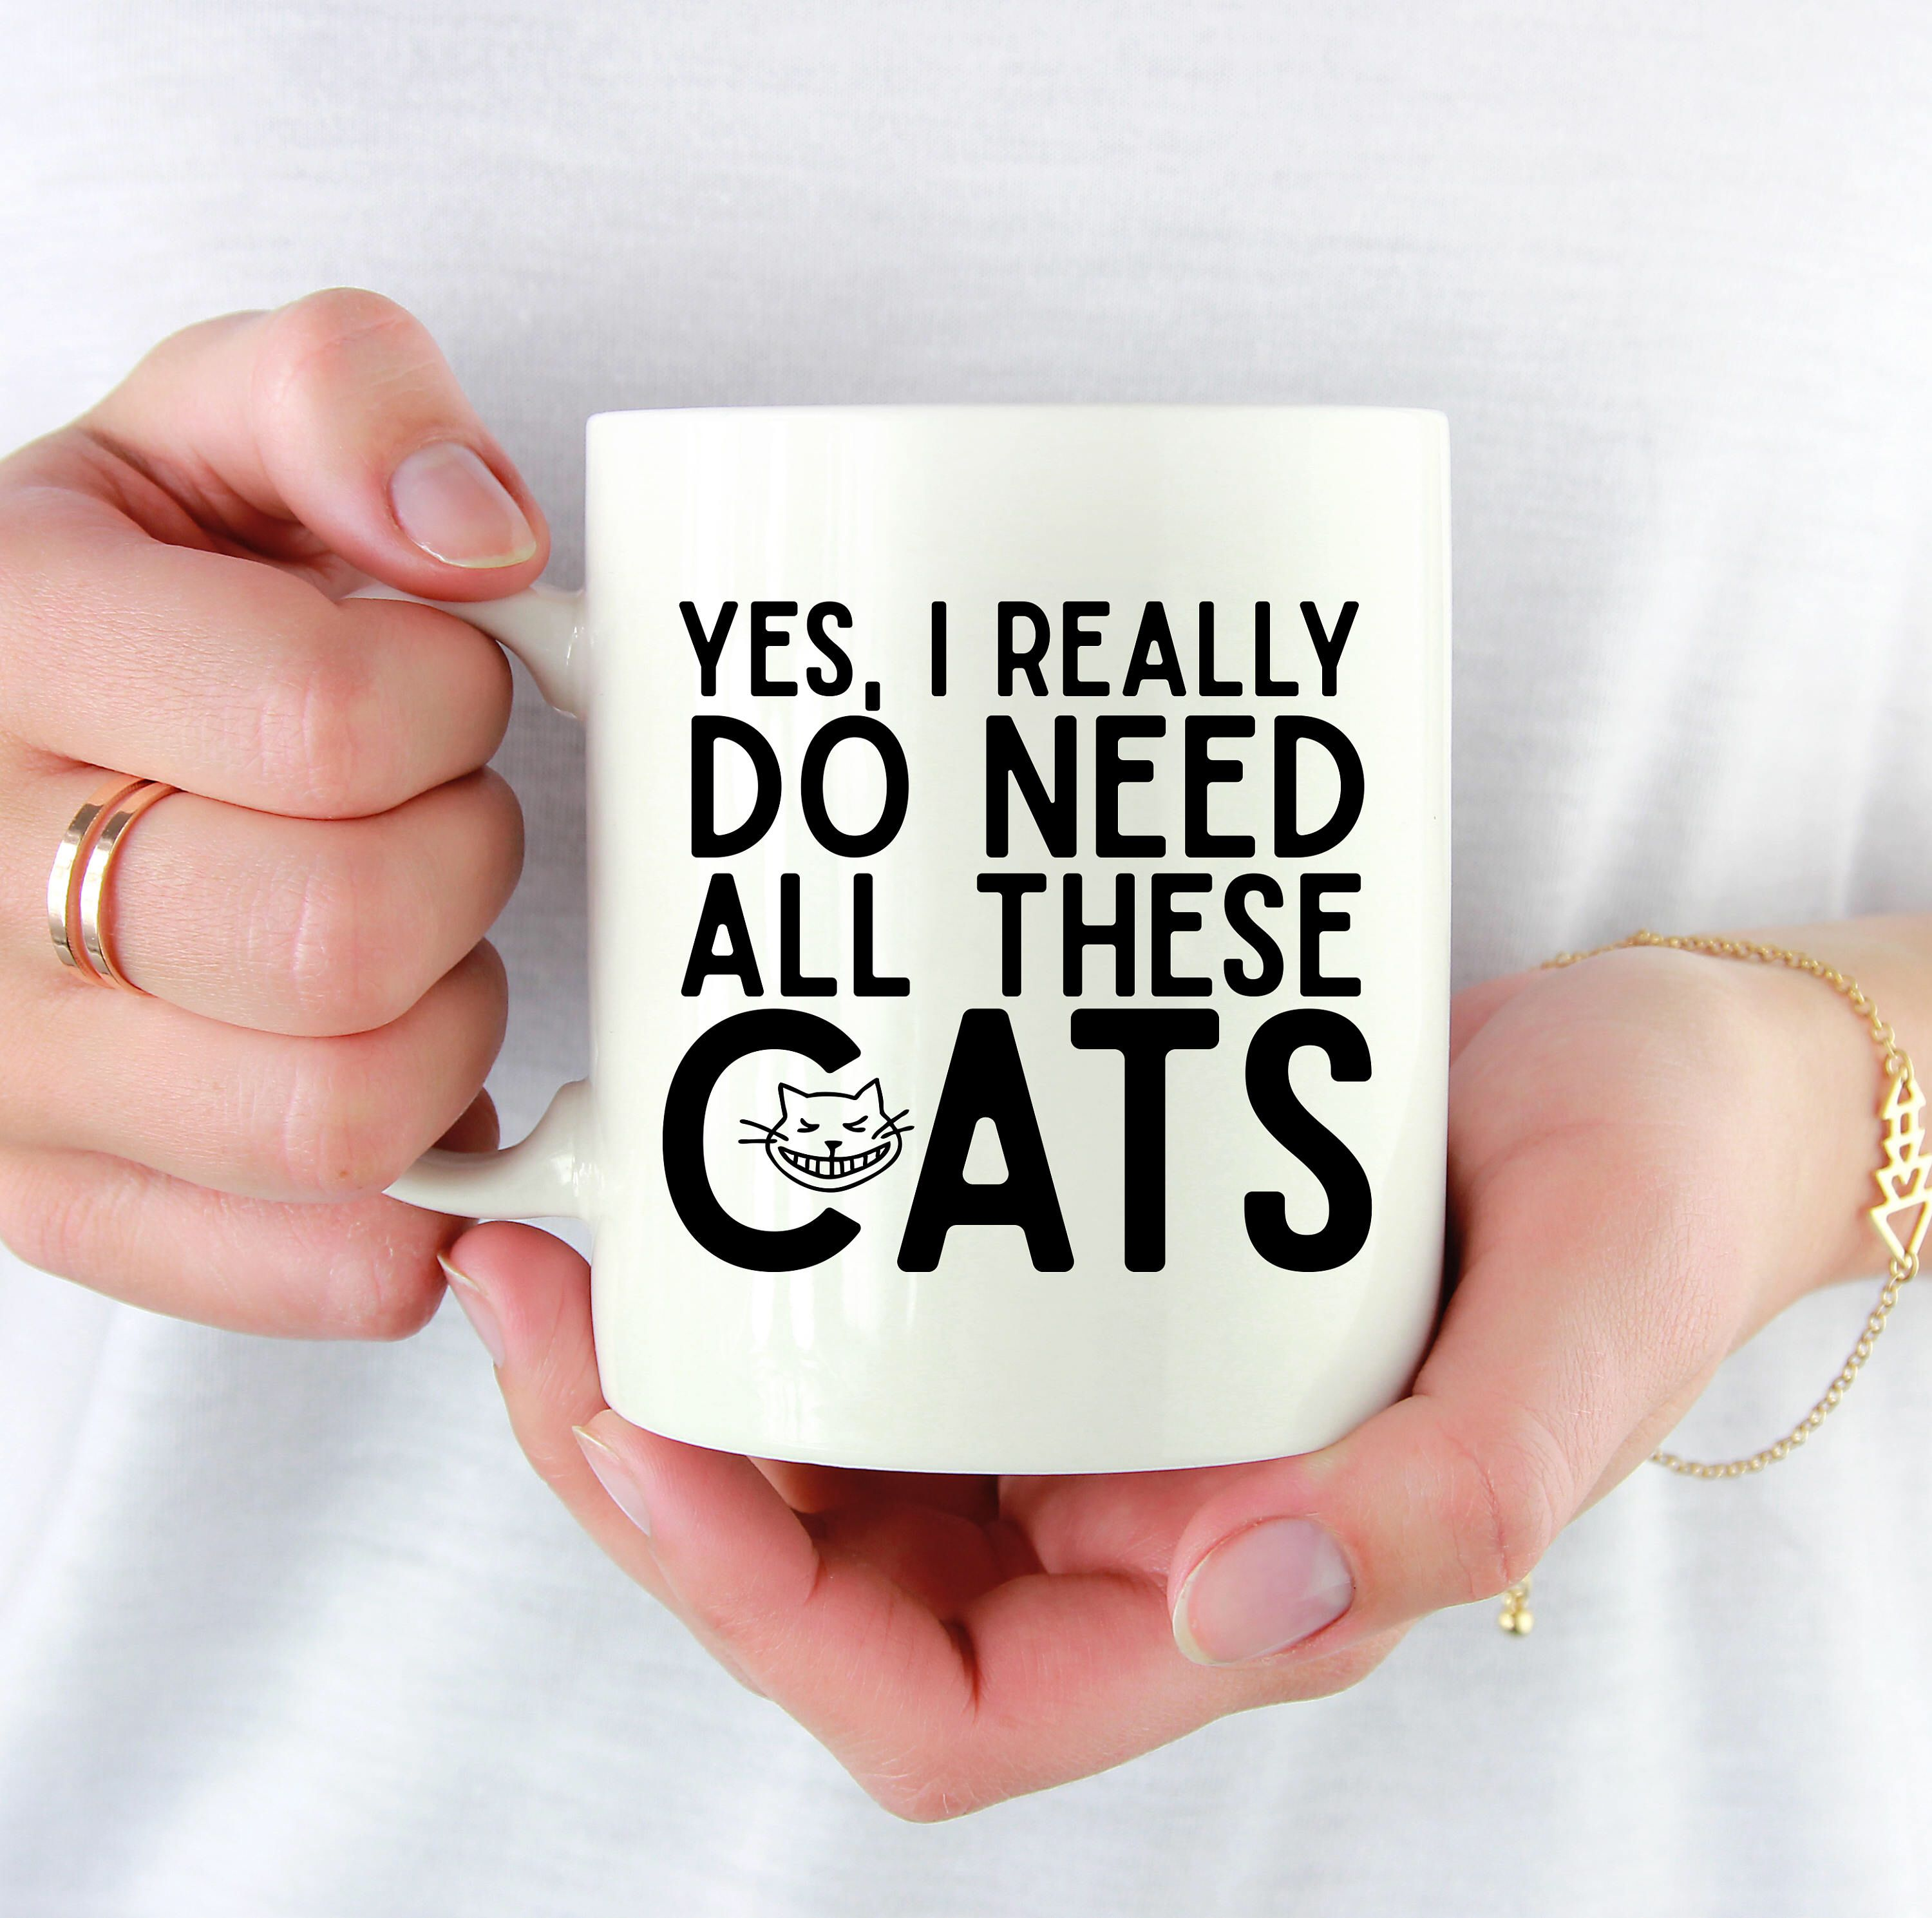 Yes I Really Do Need All These Cats Mug, Crazy Cat Lady, Cat Mom, Fur Mom, Mama, Coffee Mug, Cup, Tea, Cat Mug, Funny Coffee Mug, Funny Mug